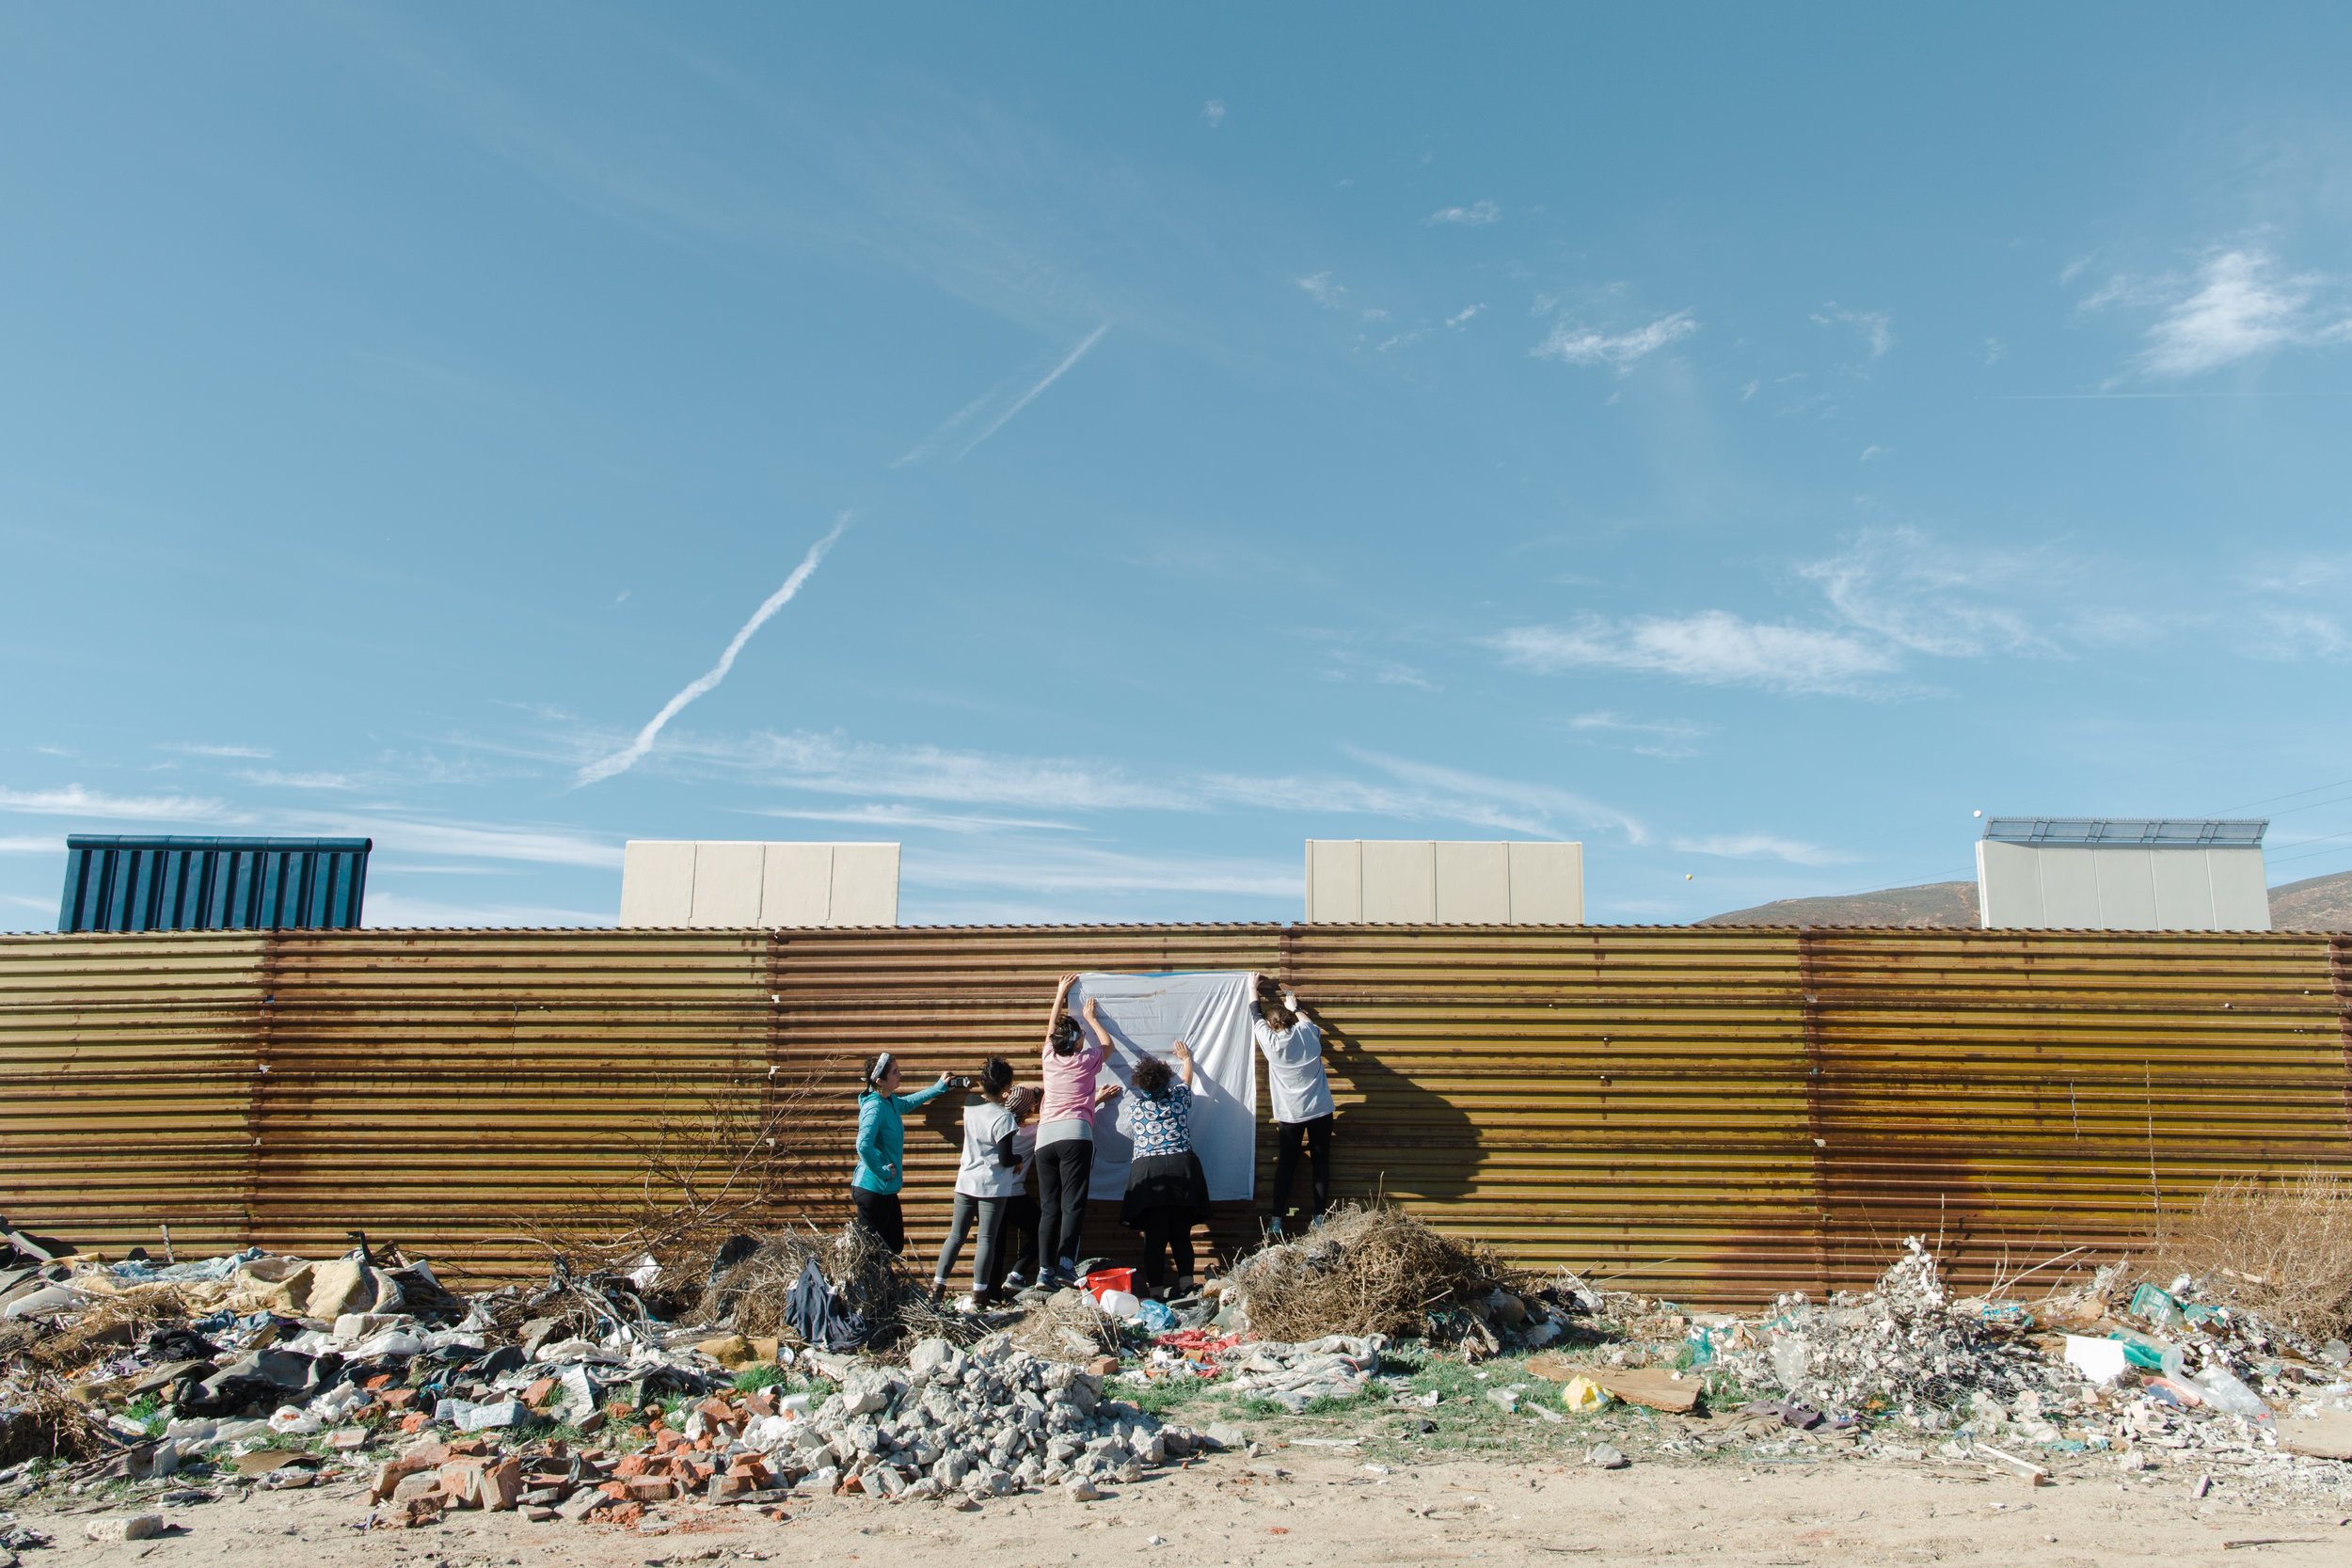 AMERICA'S WALL - AMBOS PROJECT